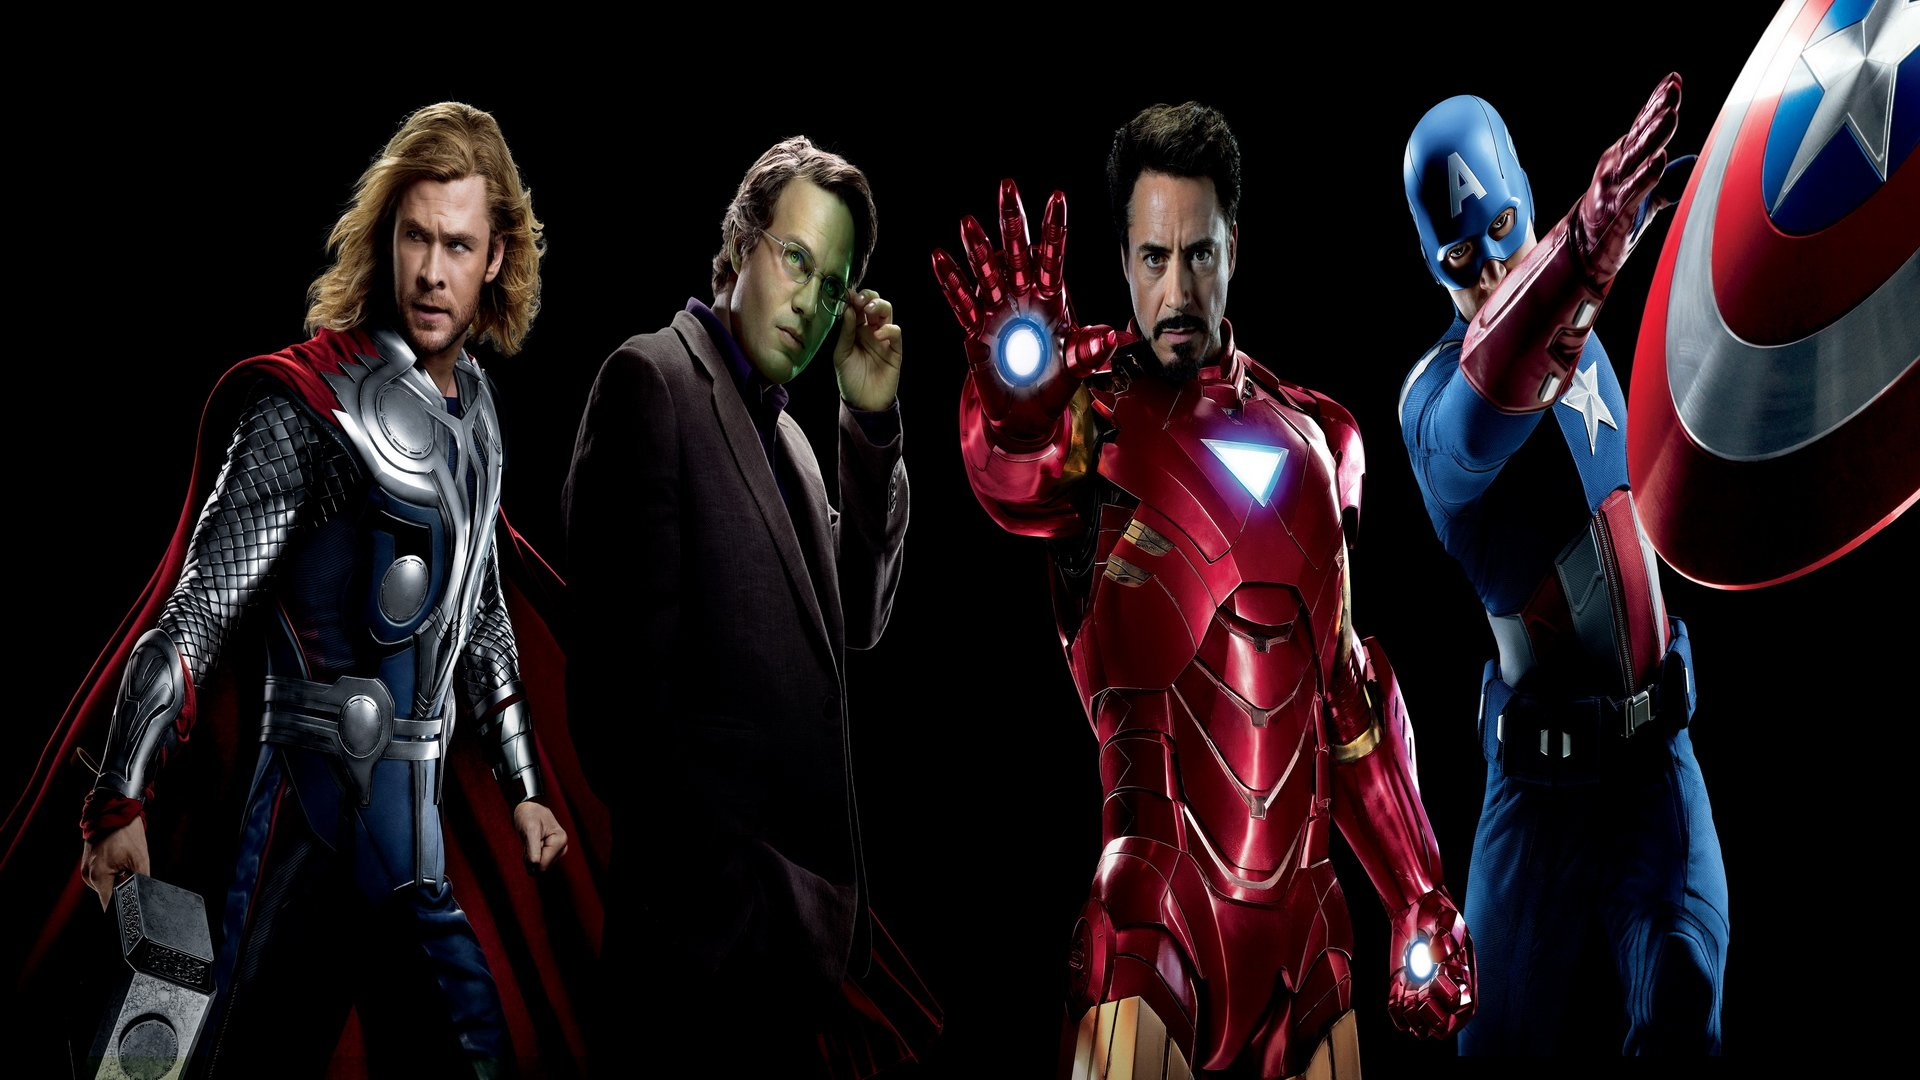 avengers hd wallpapers 1080p wallpapersafari